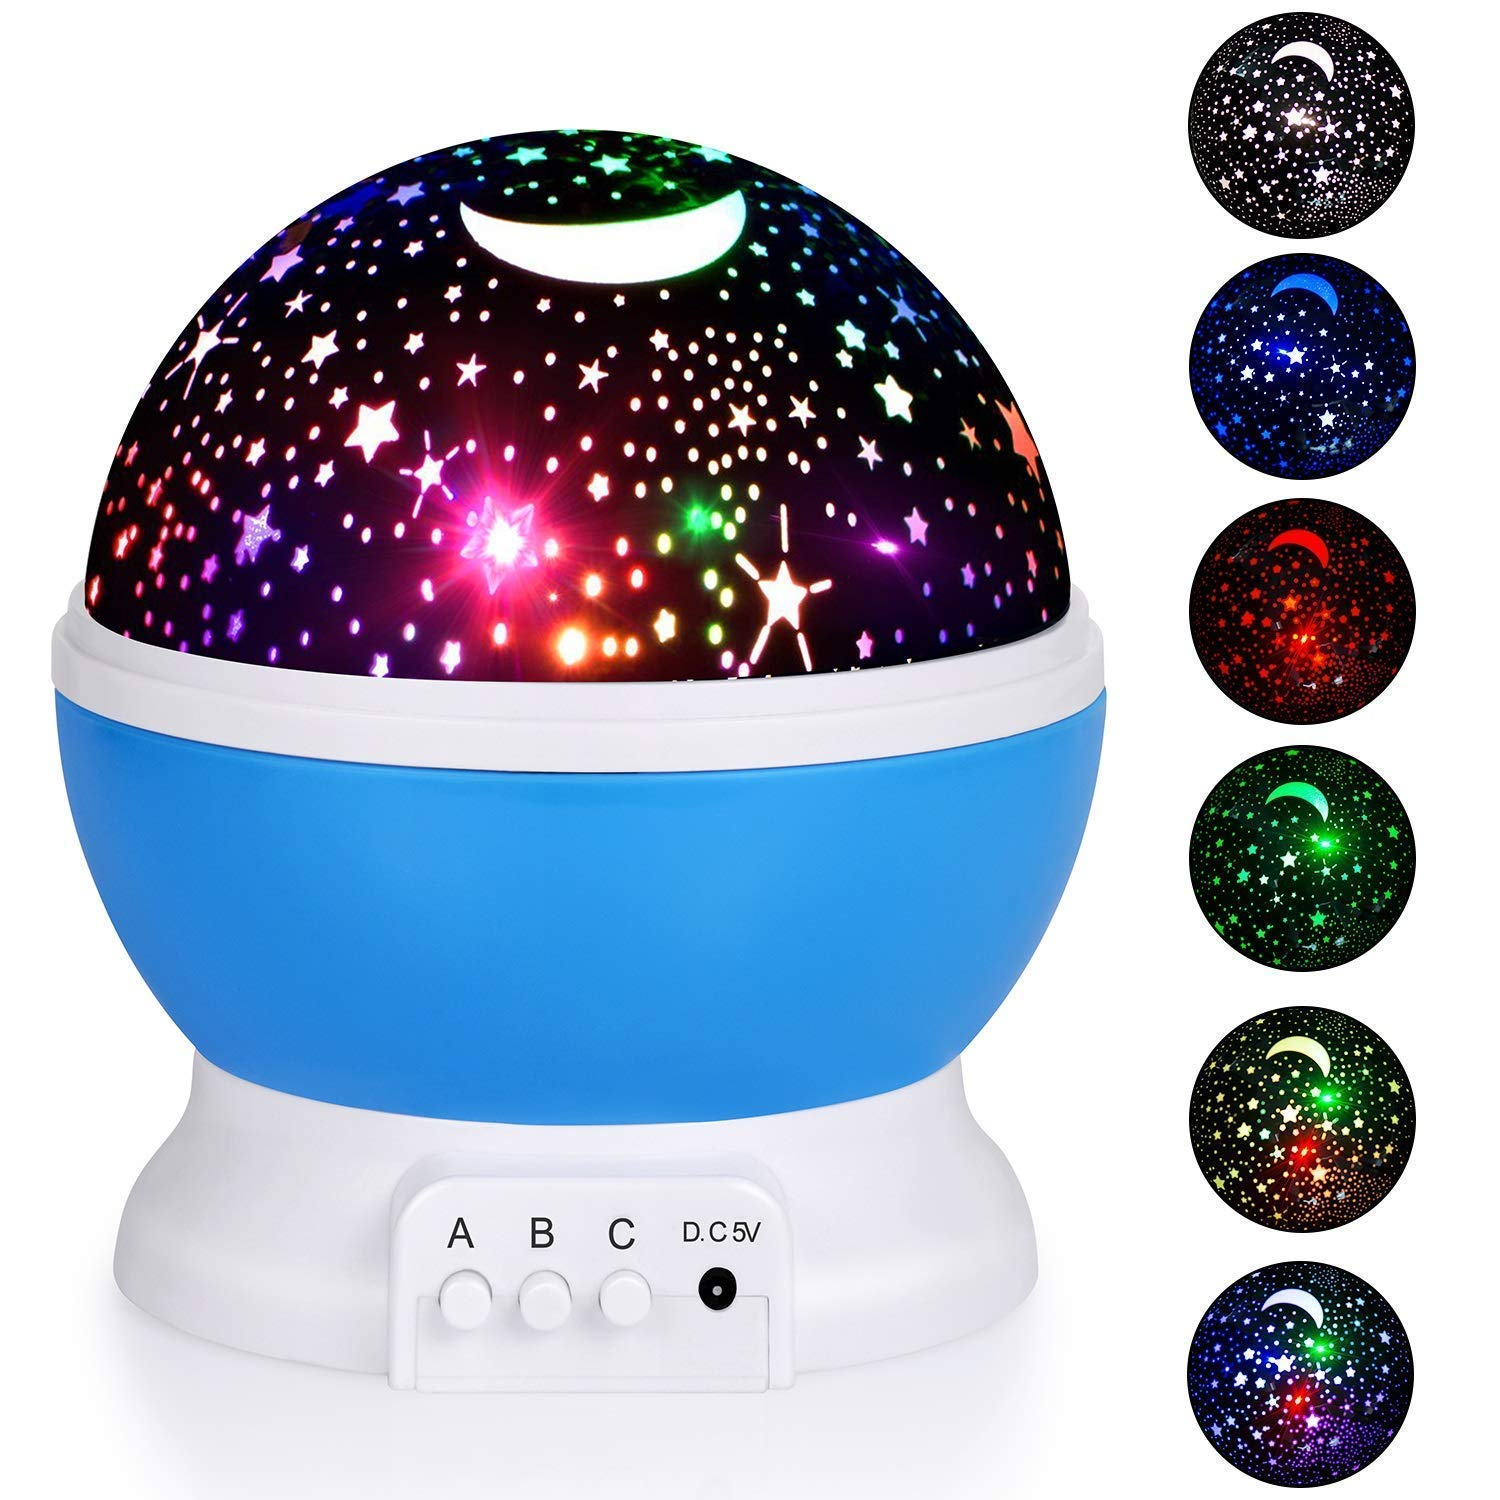 Cynkie Kids Night Light, Moon Star Night Light Rotating Star Projector, Baby Night Light, Night Lighting Lamp 4 LED 8 Modes with USB Cable, Best for Bedroom Nursery Kids Baby Children Birthday Gift